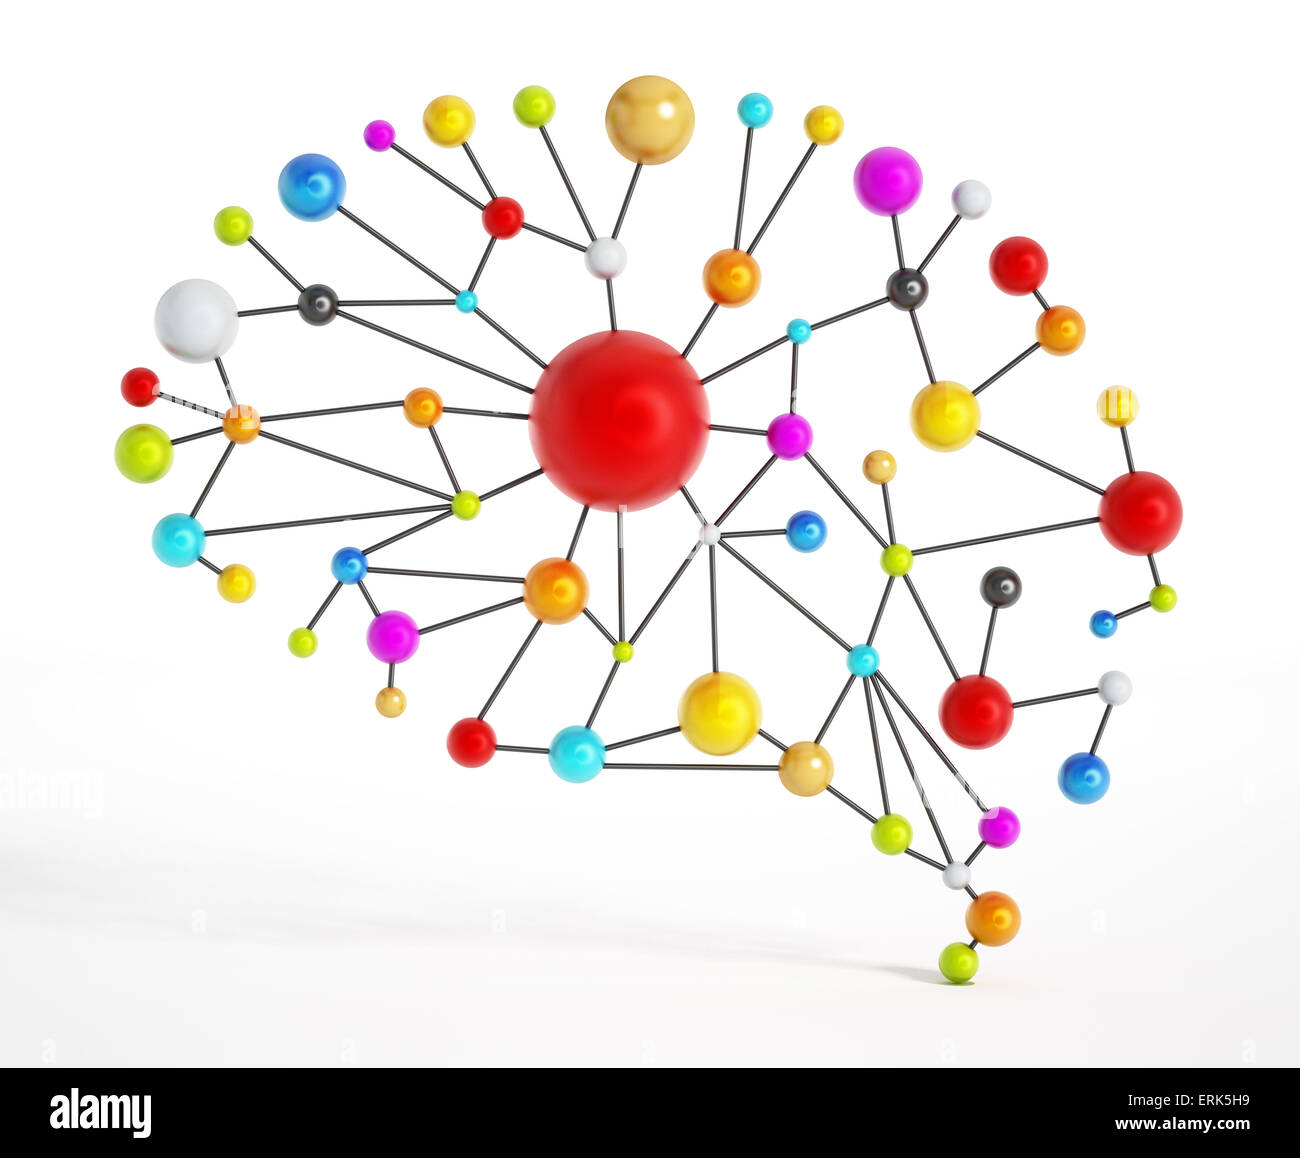 Brain network with colorful connected dots. - Stock Image